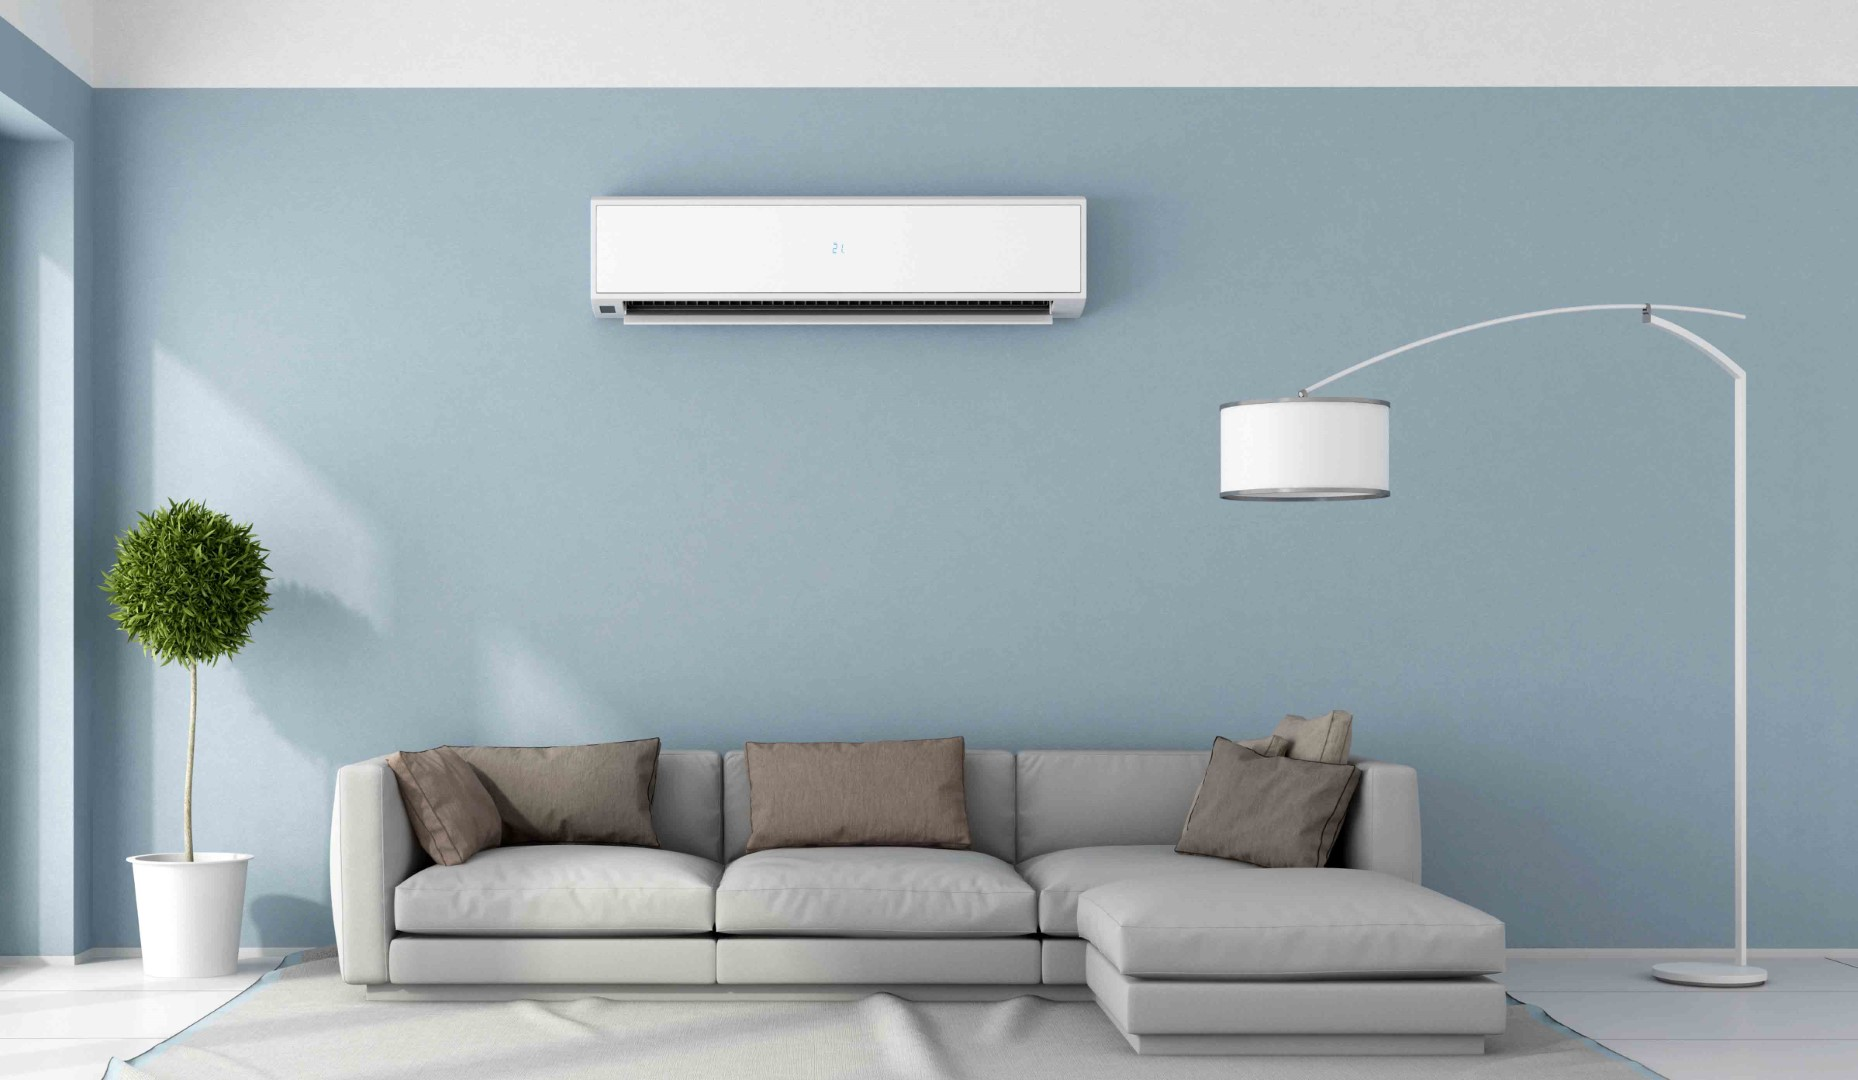 A mini-split AC unit is installed on a home's interior wall above the living room sofa.